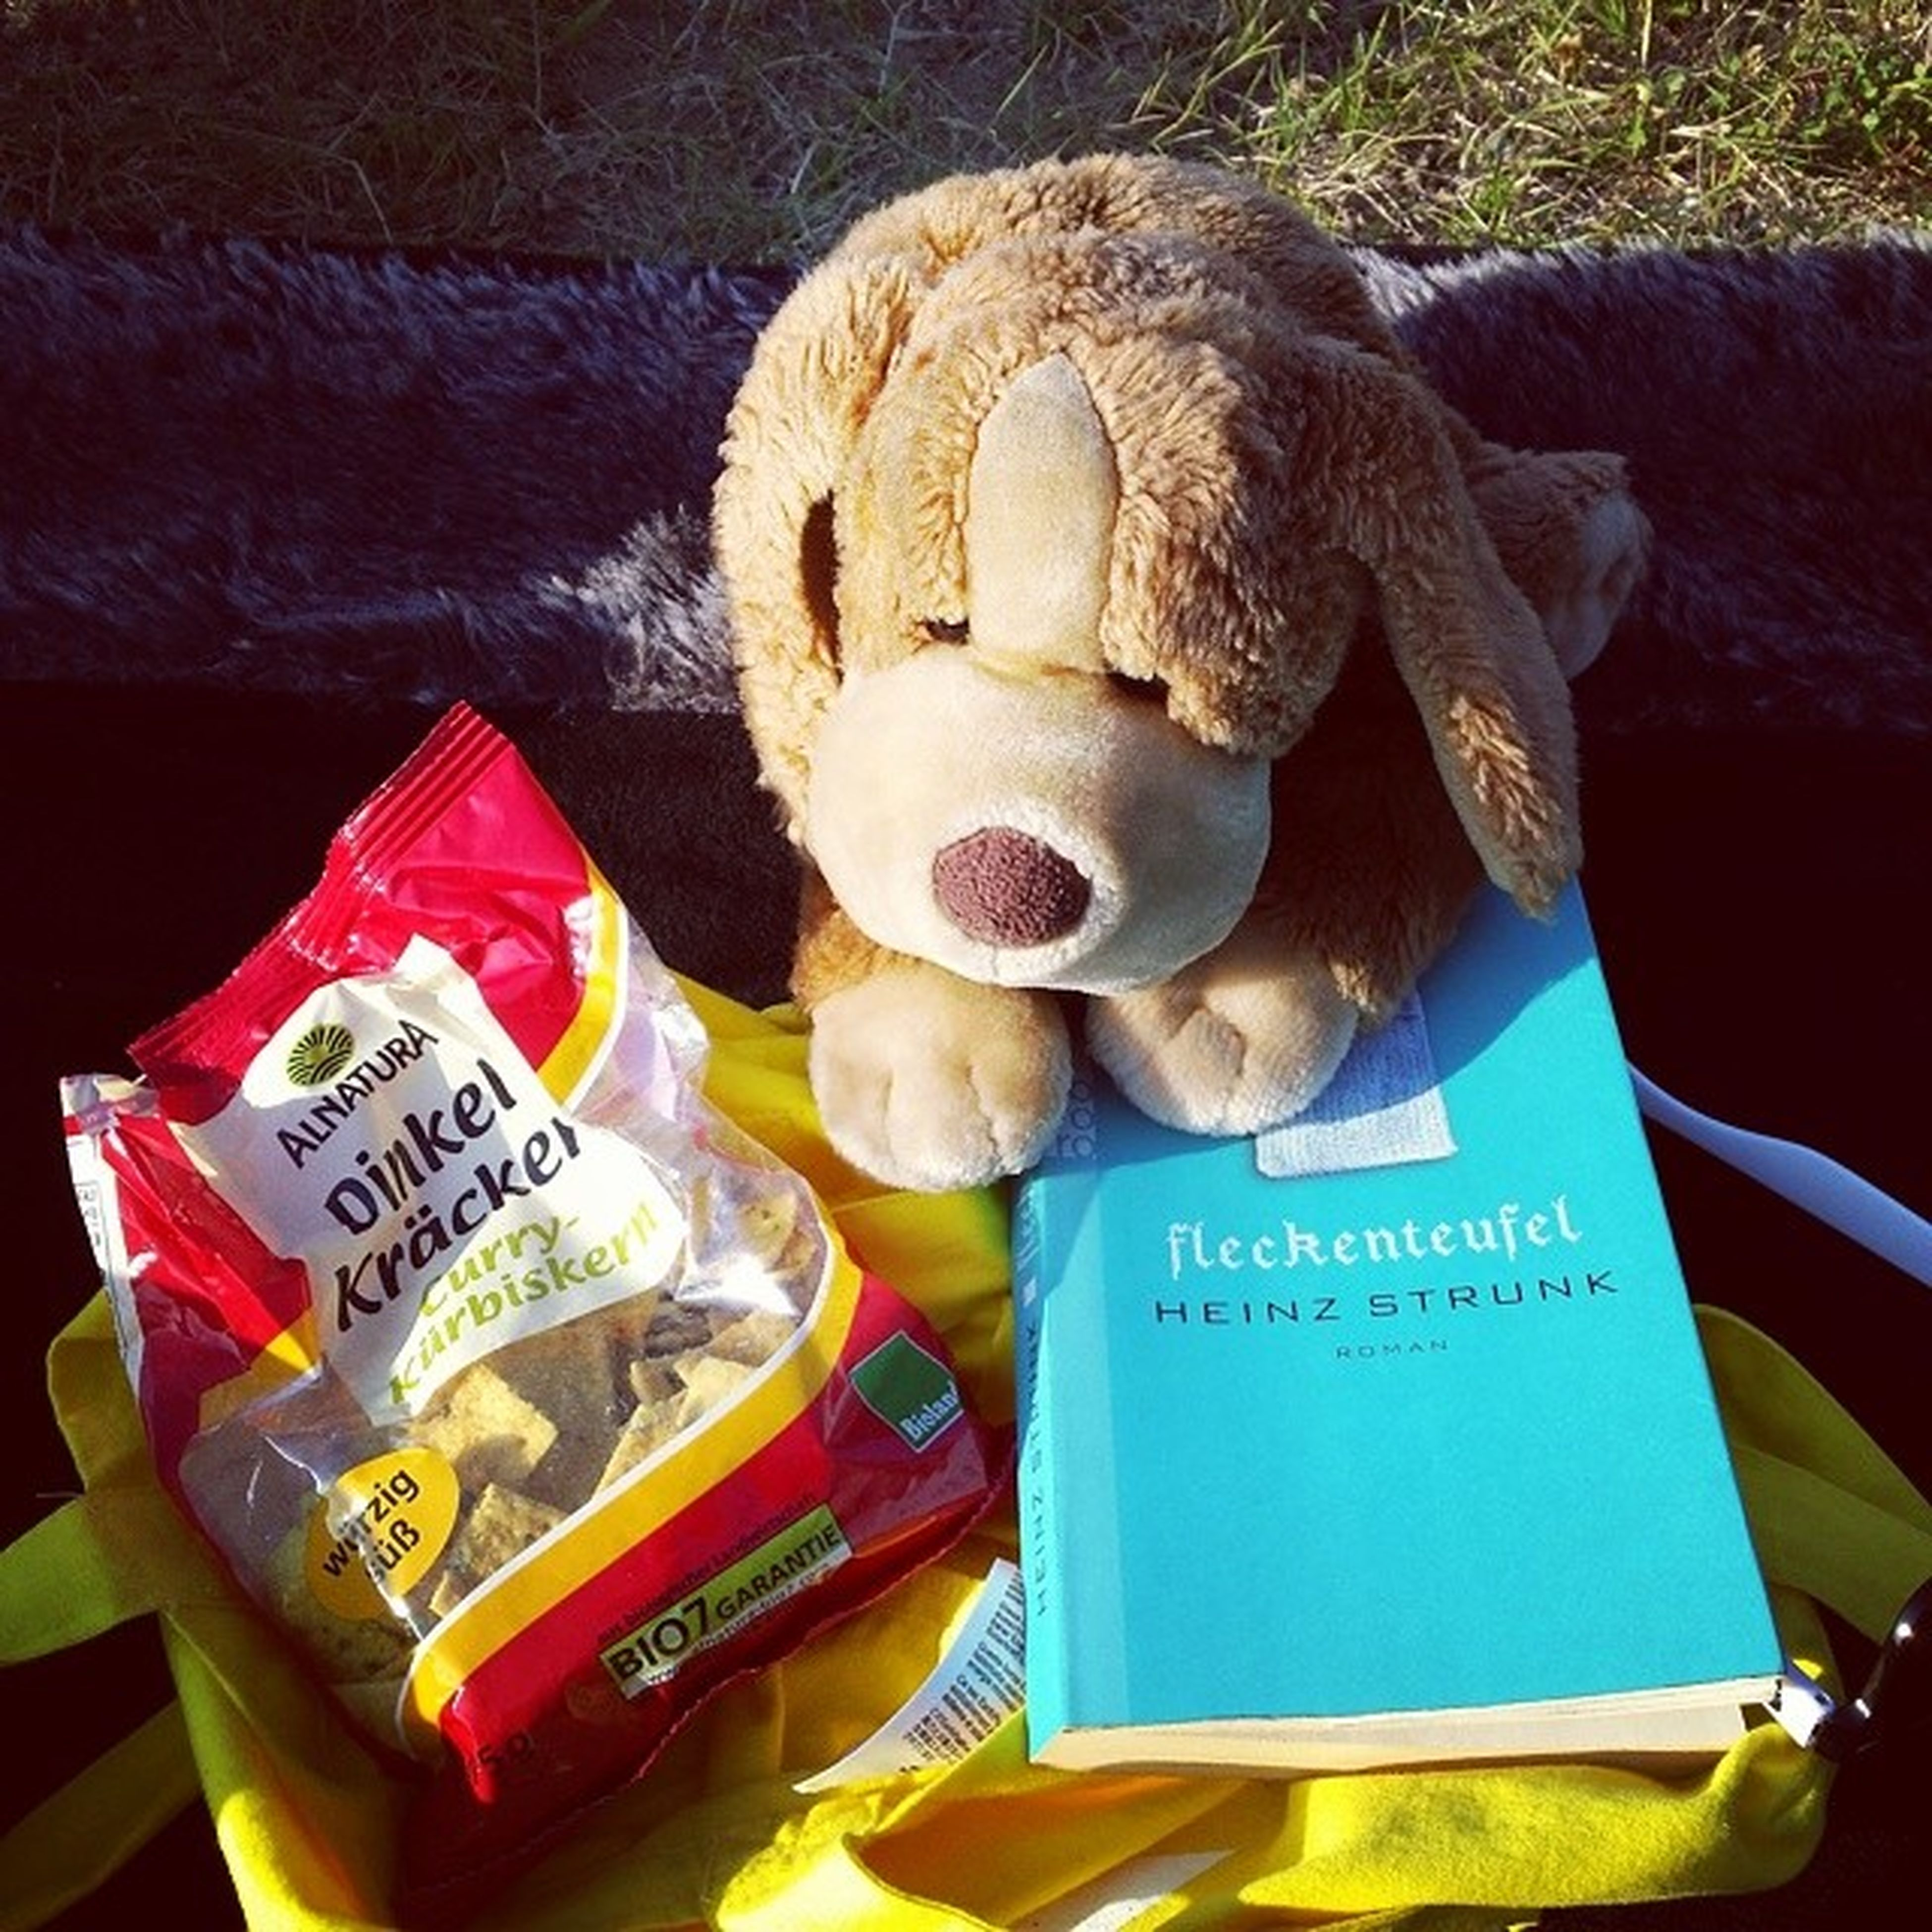 Picnic with ma, pa, Food and a good Book ! Down by the River :) puppy stuffedanimals heinzstrunk fleckenteufel teddy sun summer fun love hamburg germany deutschland elbe reading epic hipster picoftheday stuffedanimal cute instabest park swag cool chilling